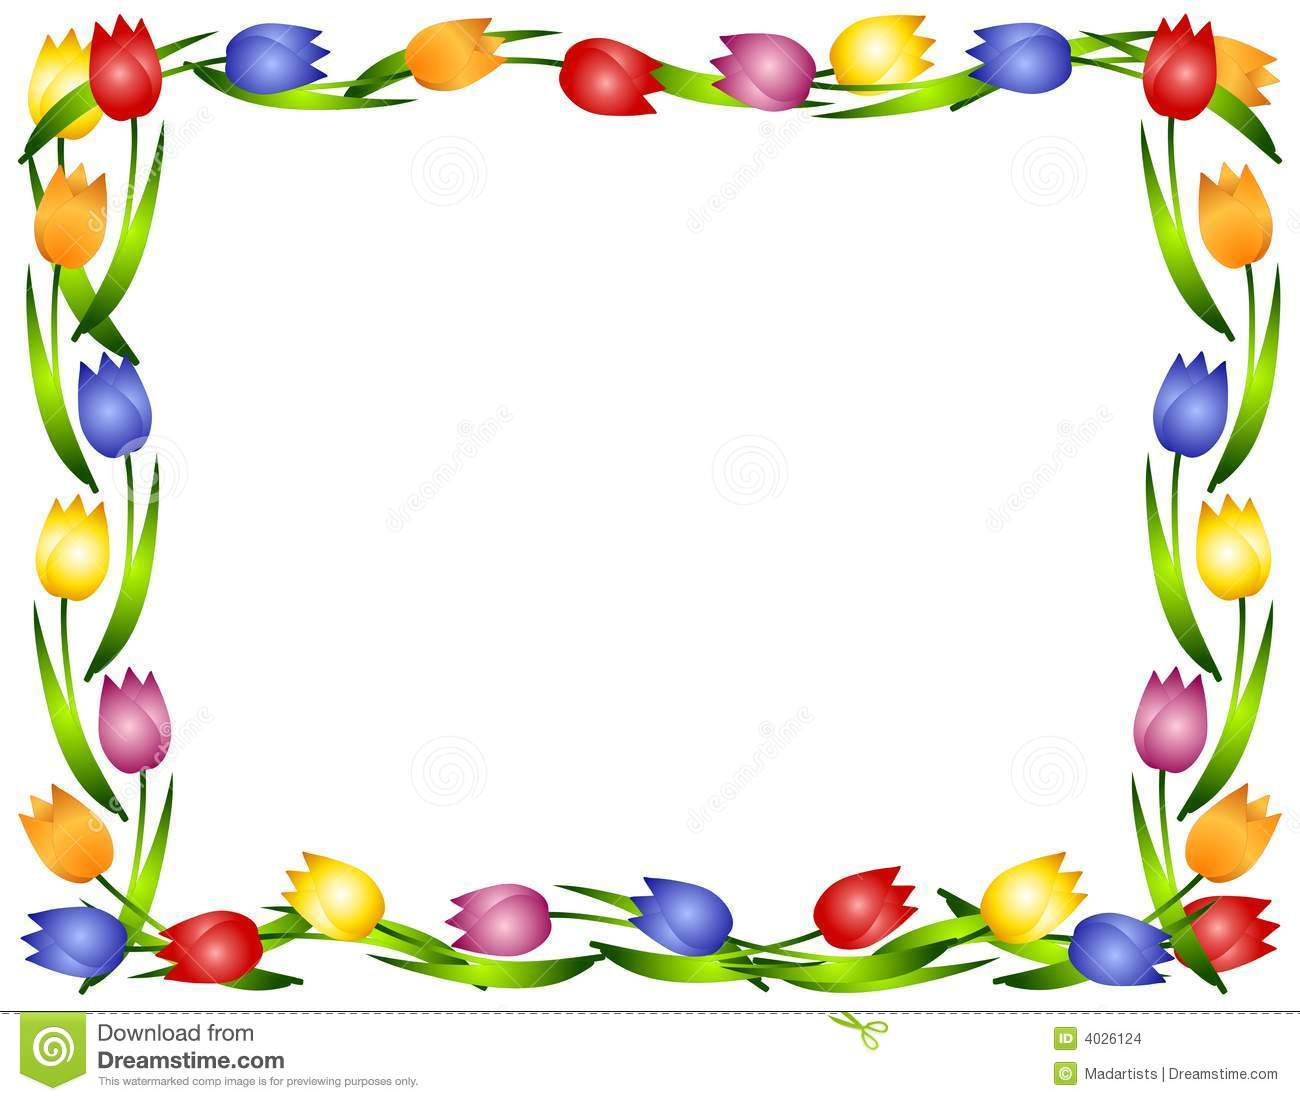 spring tulips flower frame or border stock illustration illustration of florals  colorful 4026124 star student clipart black and white star student clipart black and white